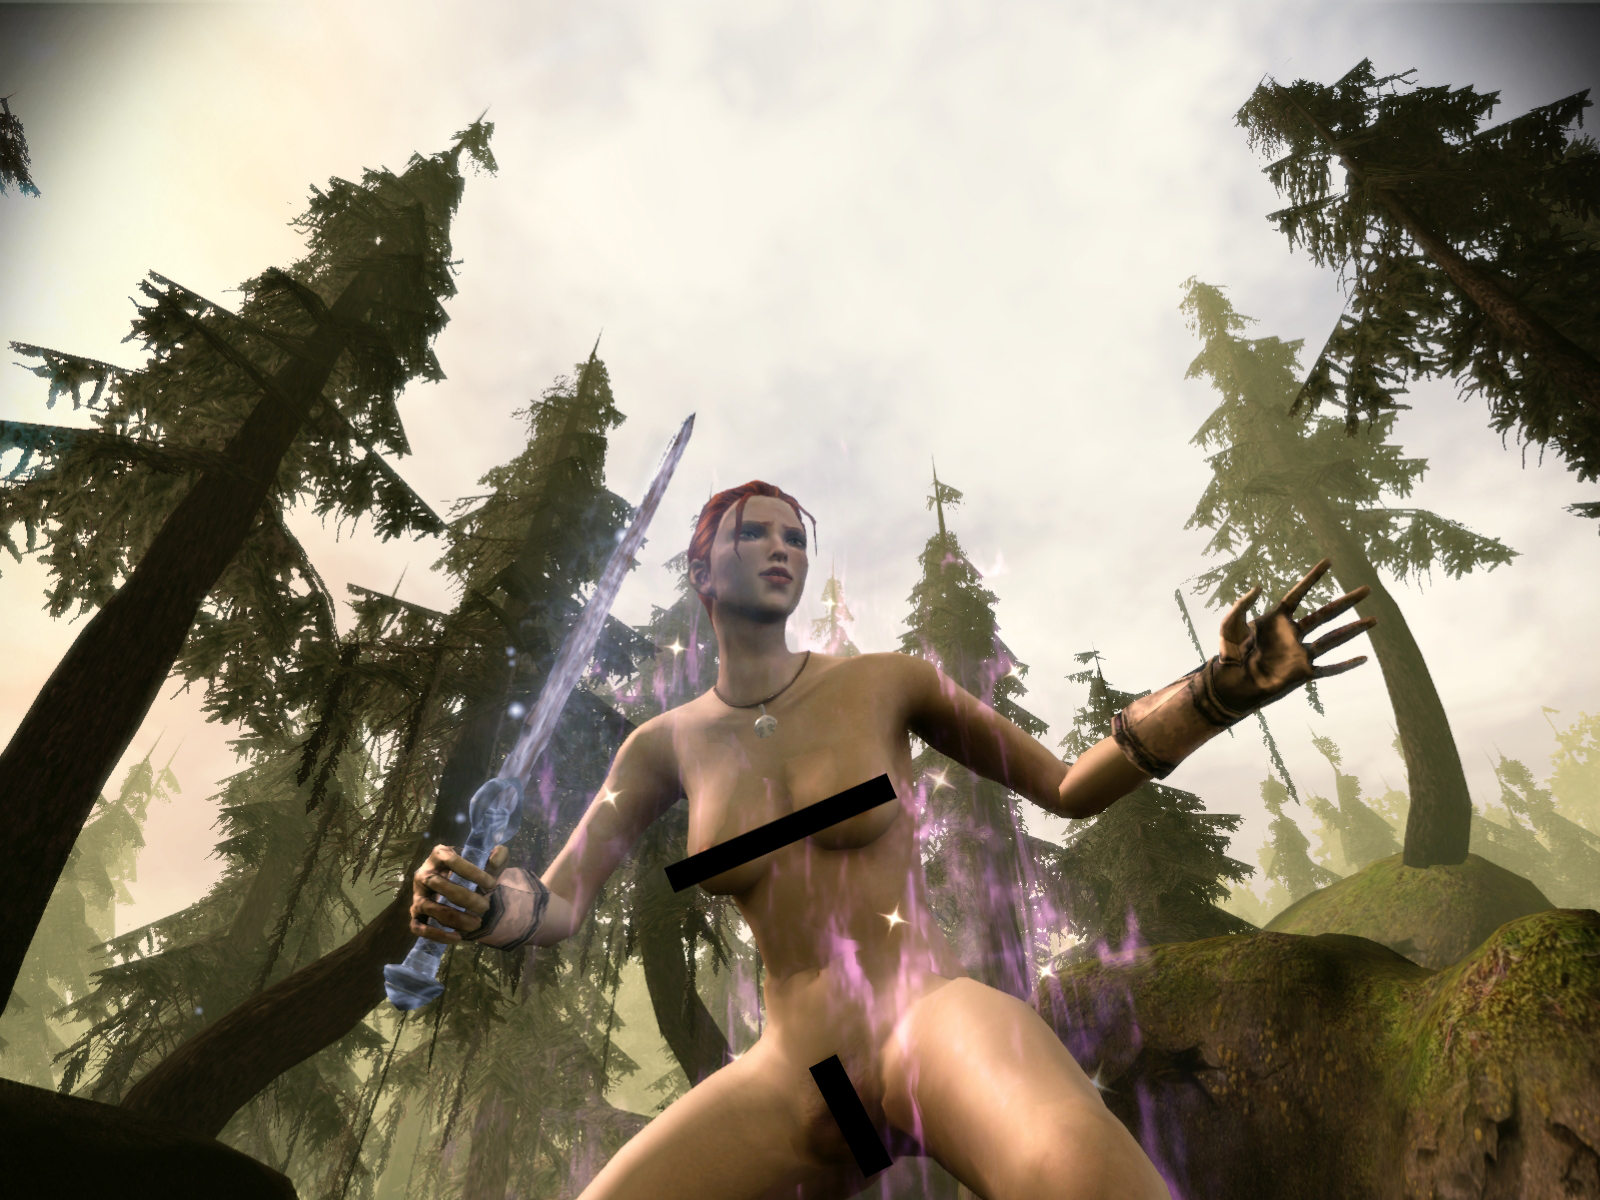 Dragon age origins nud mod hentia picture